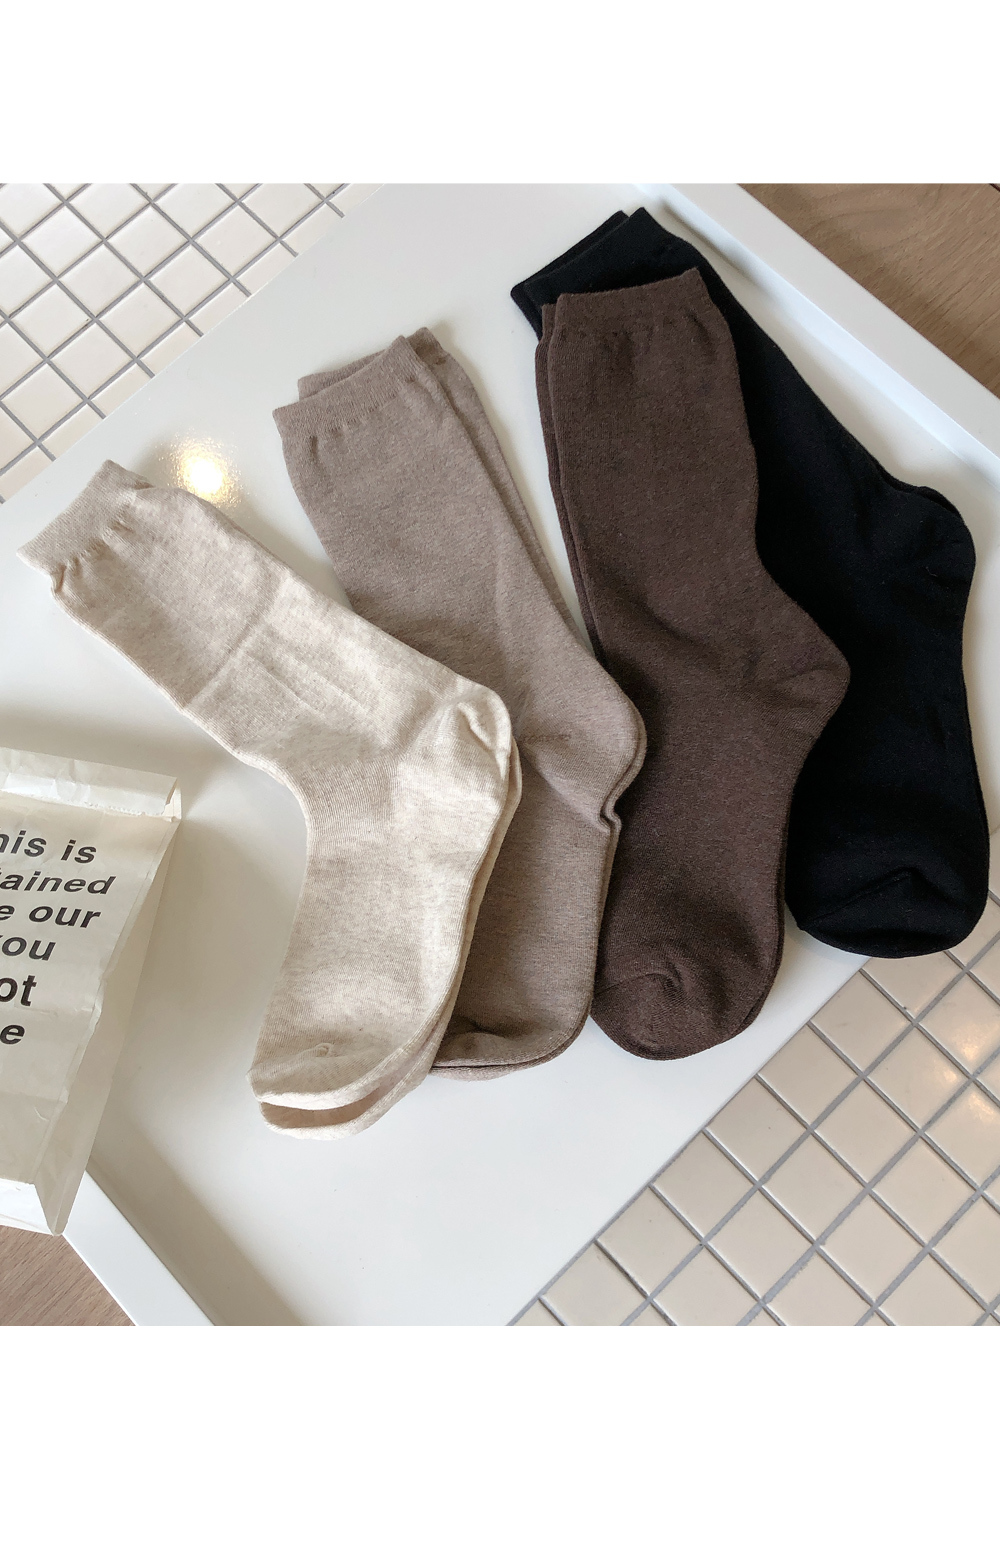 Socks you want me to have